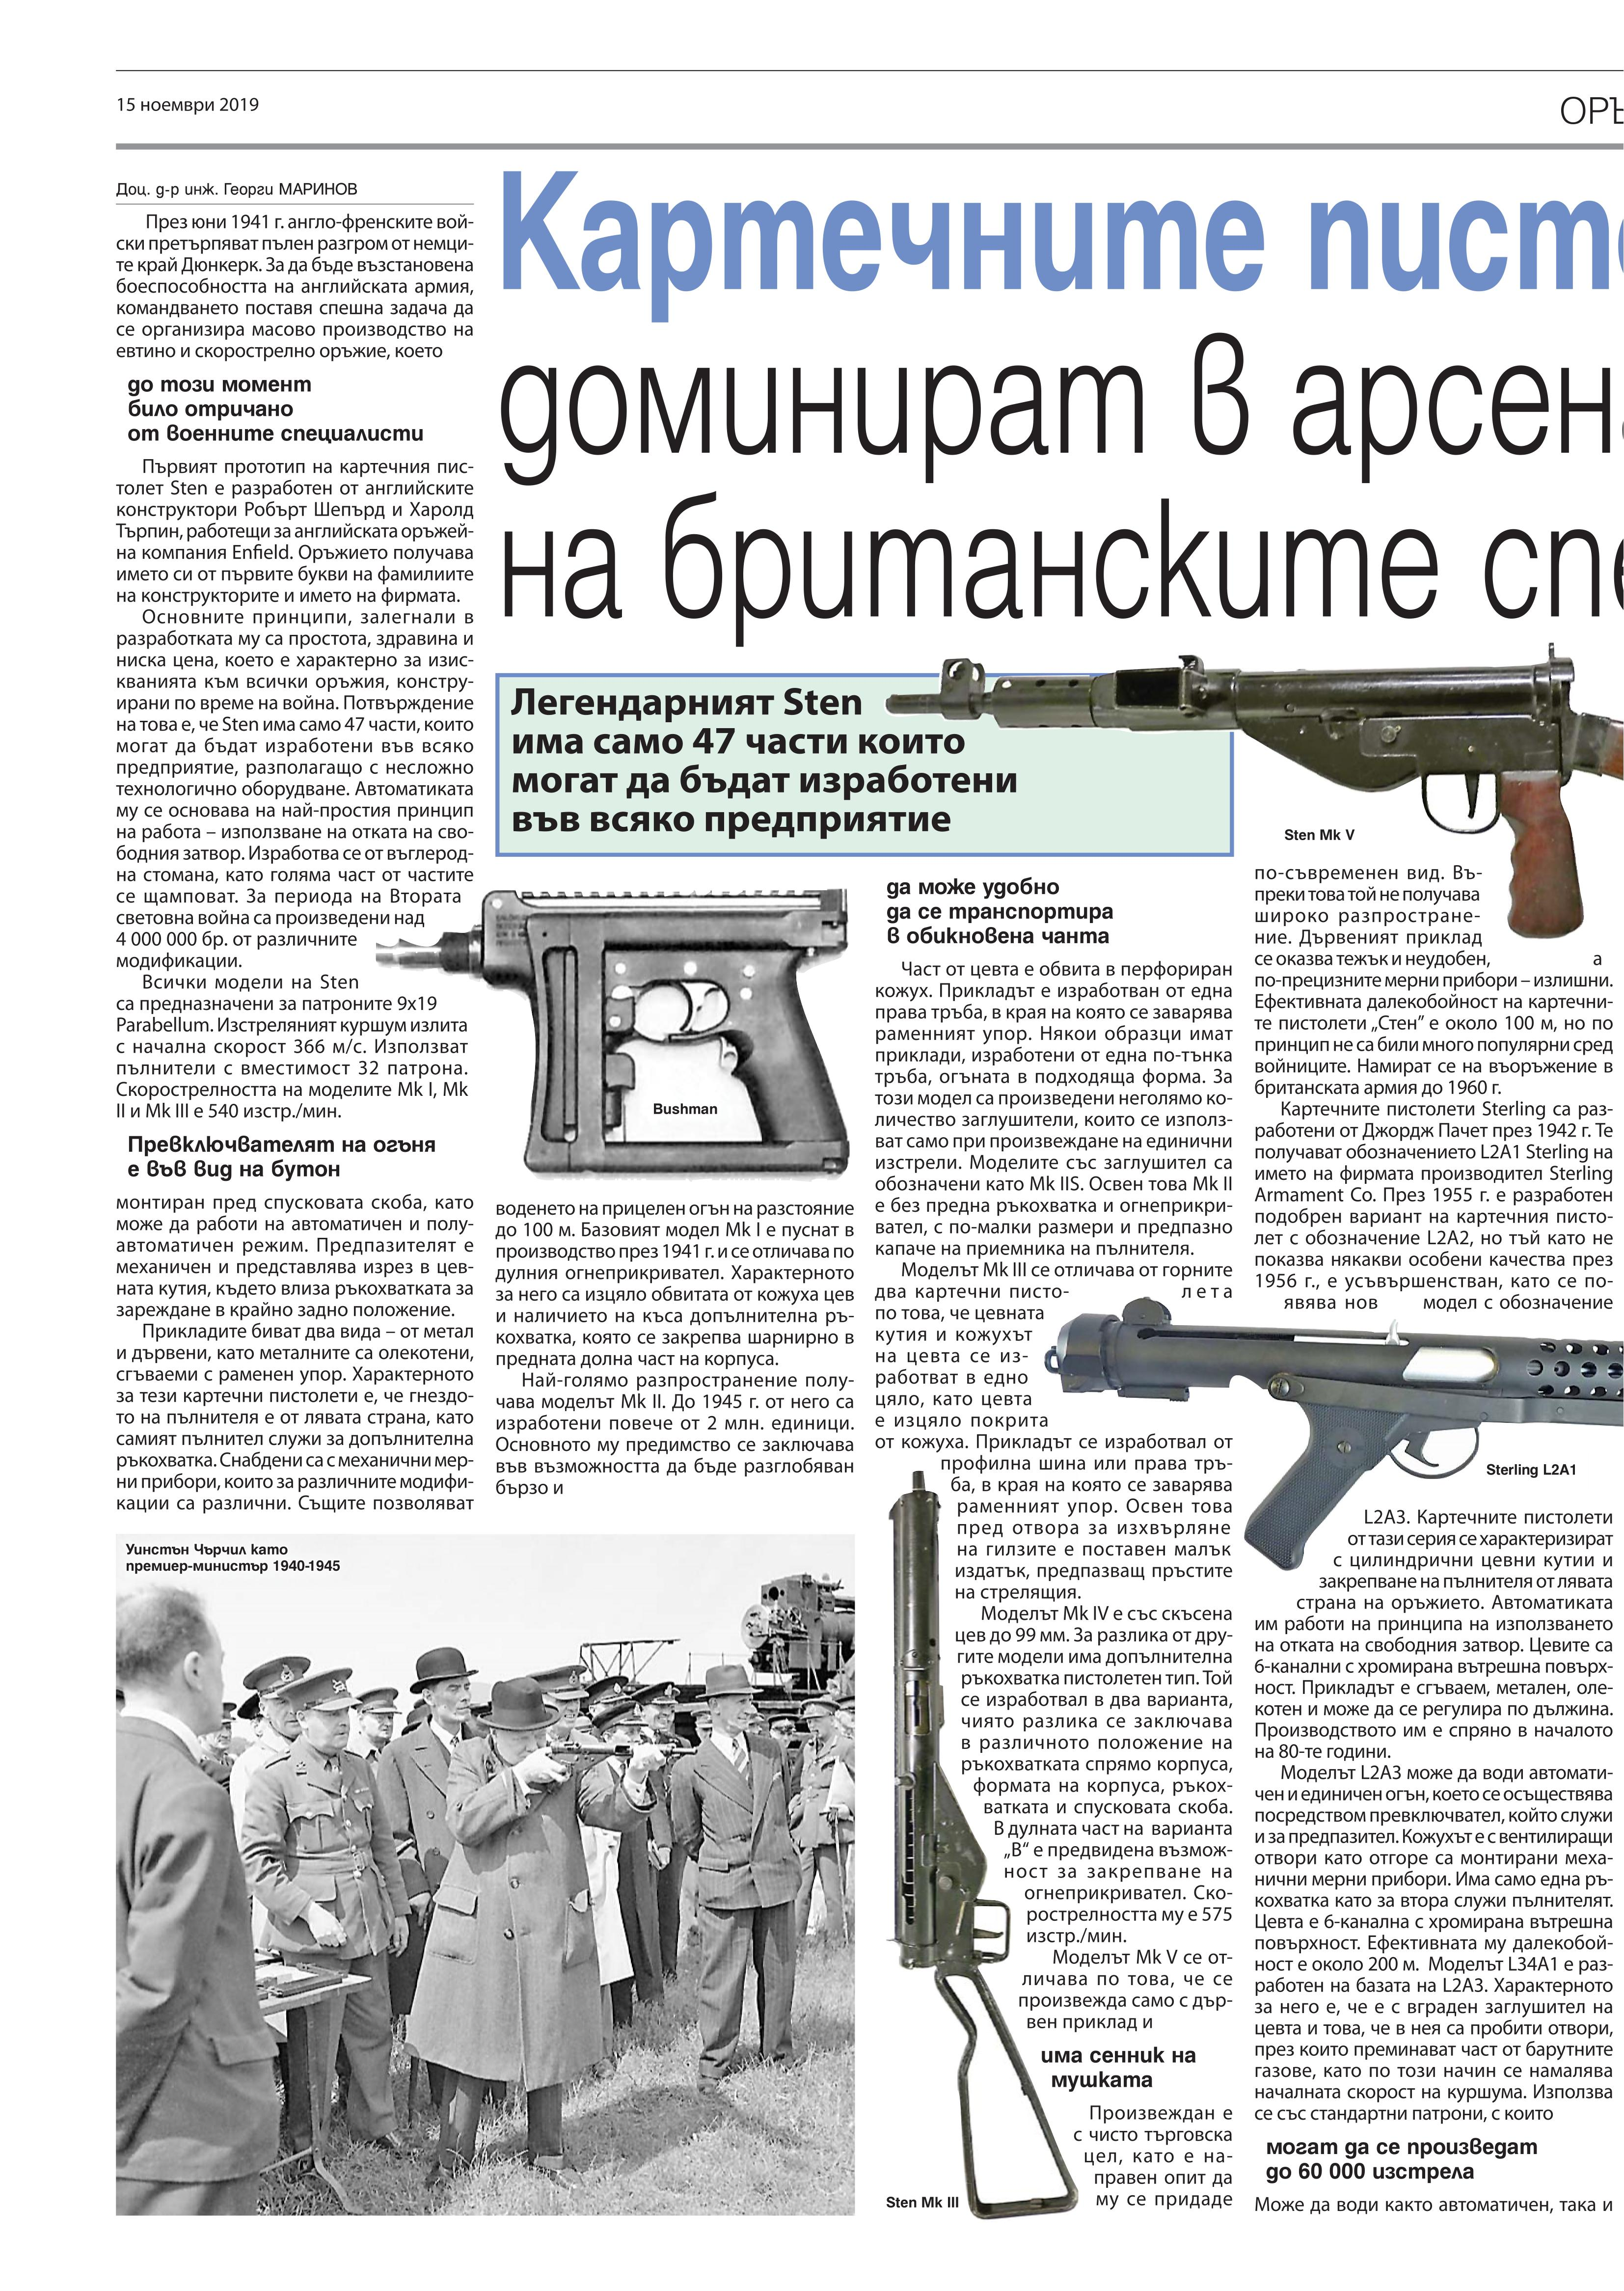 https://armymedia.bg/wp-content/uploads/2015/06/16.page1_-116.jpg